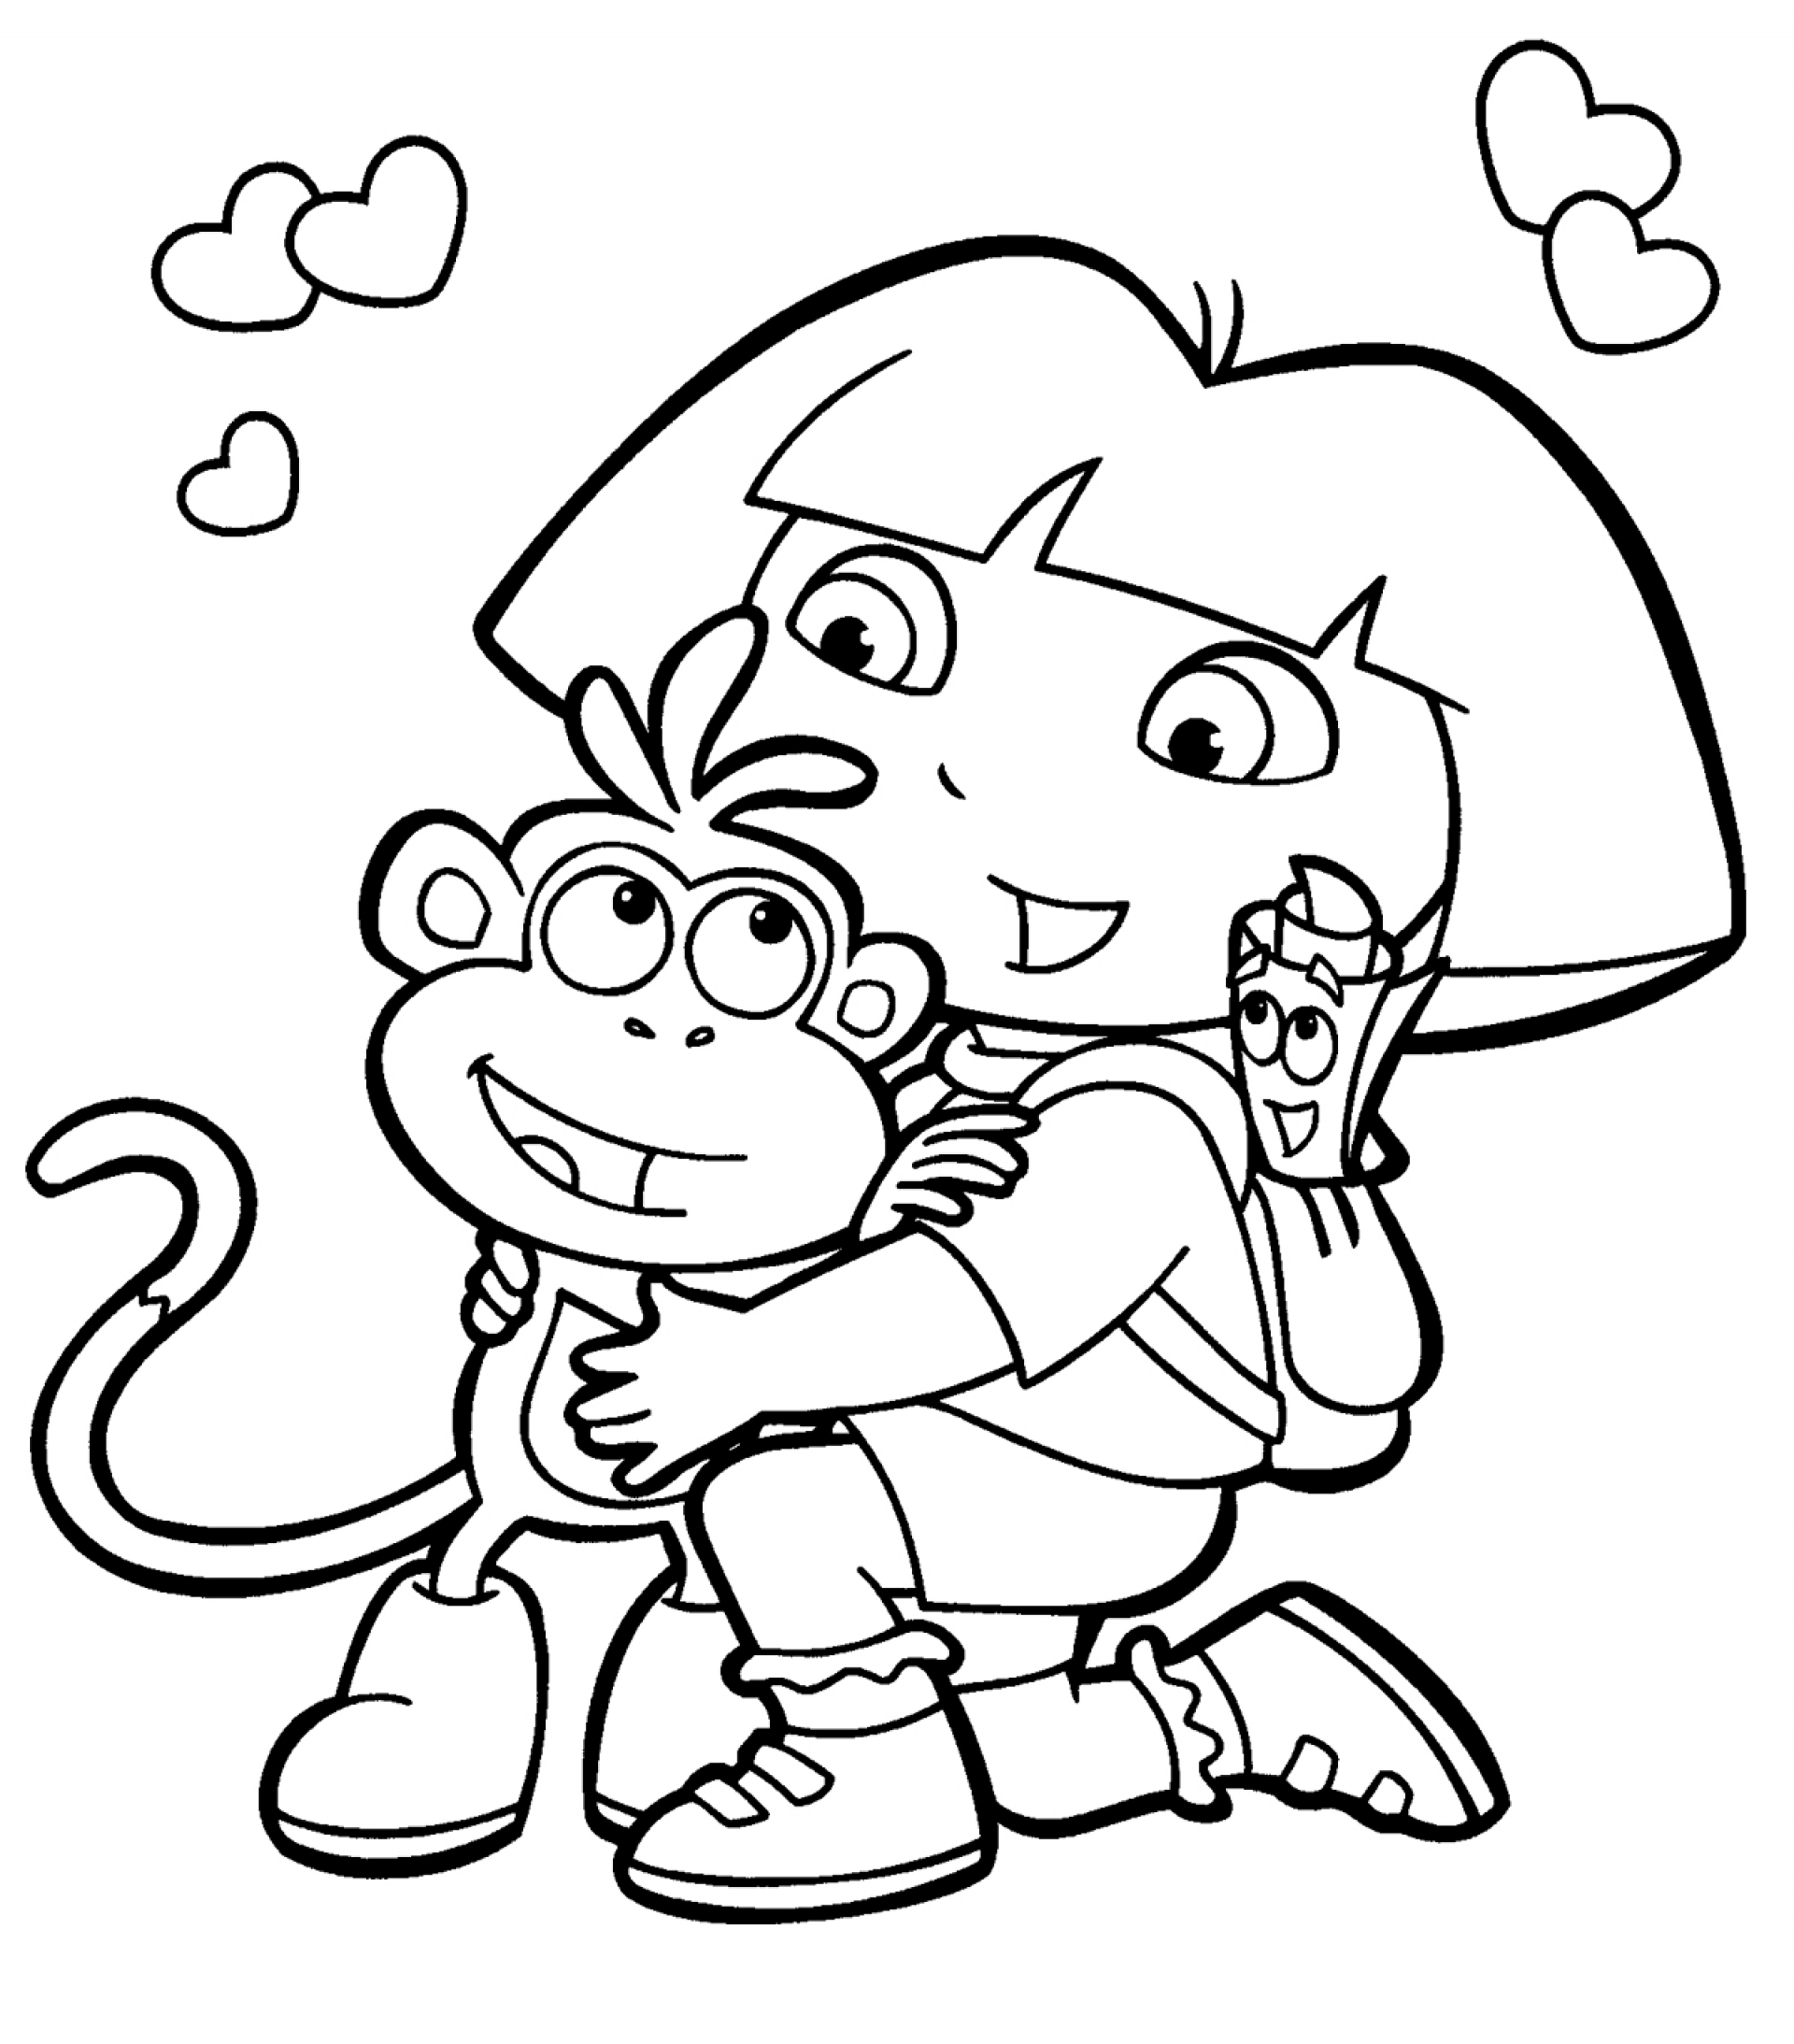 Spiderman Cartoon Coloring Pages At Getdrawings